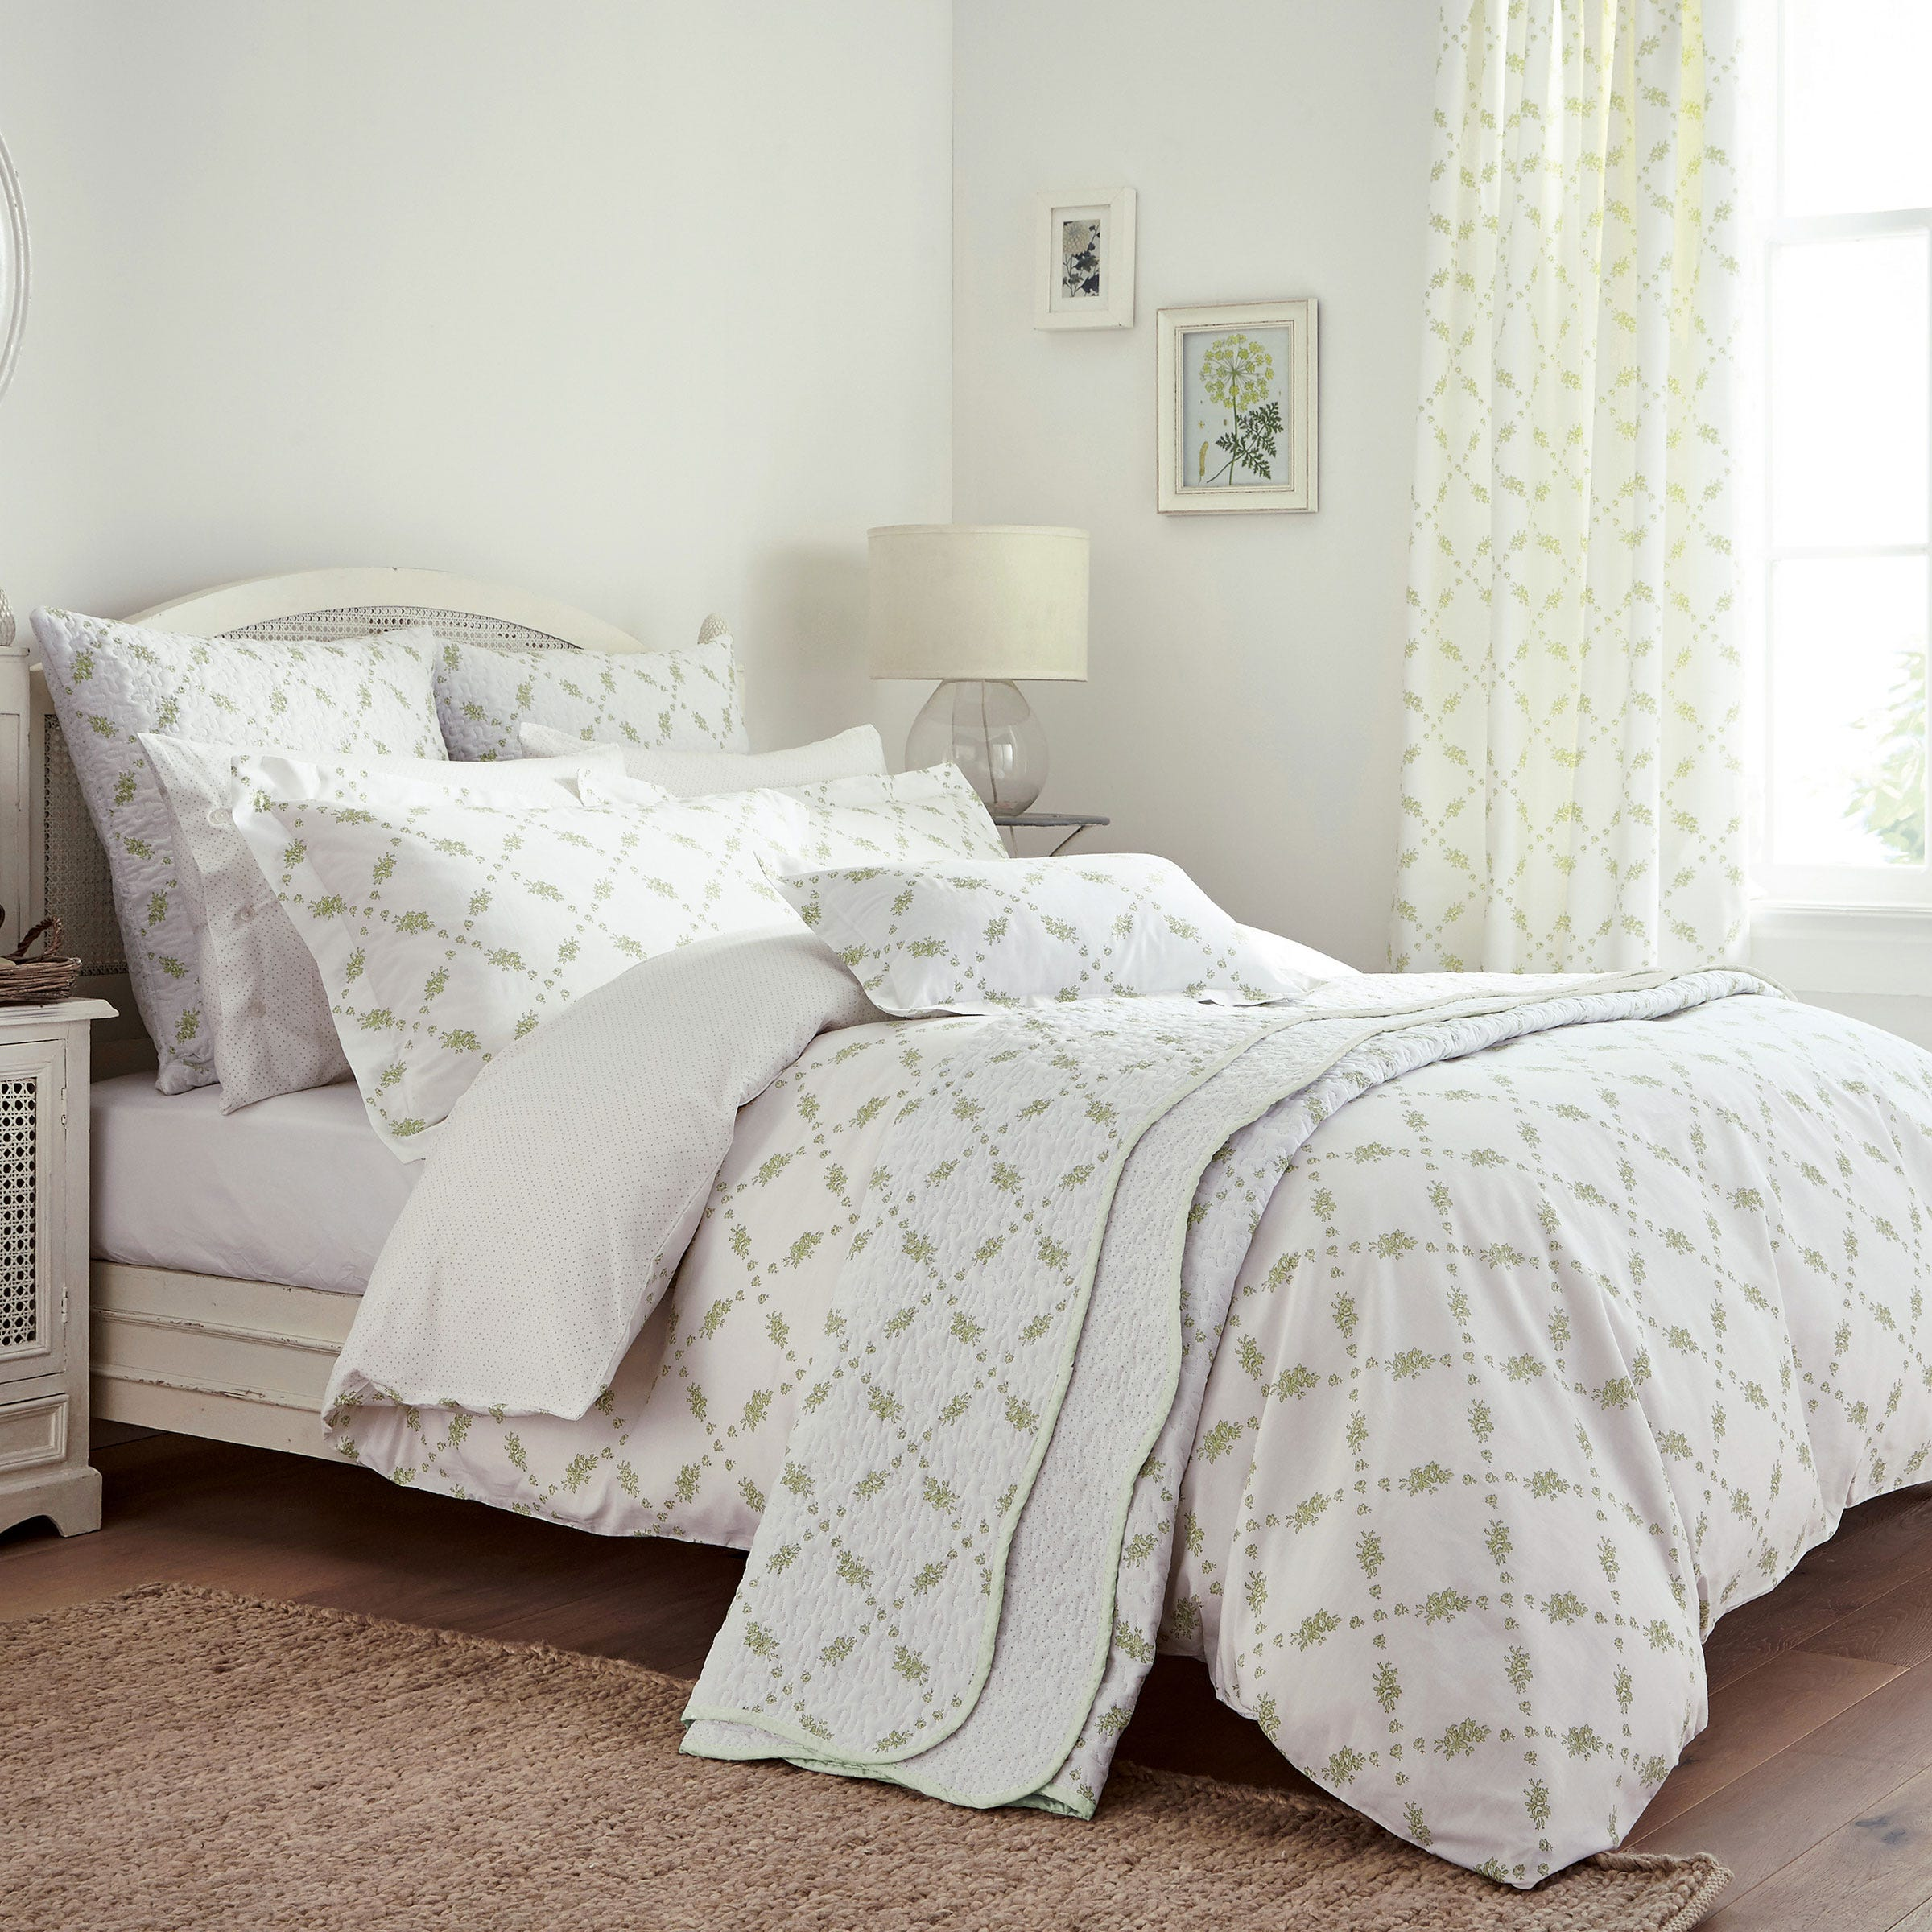 Spotty Duvet Cover Shop For Cheap Furniture Accessories